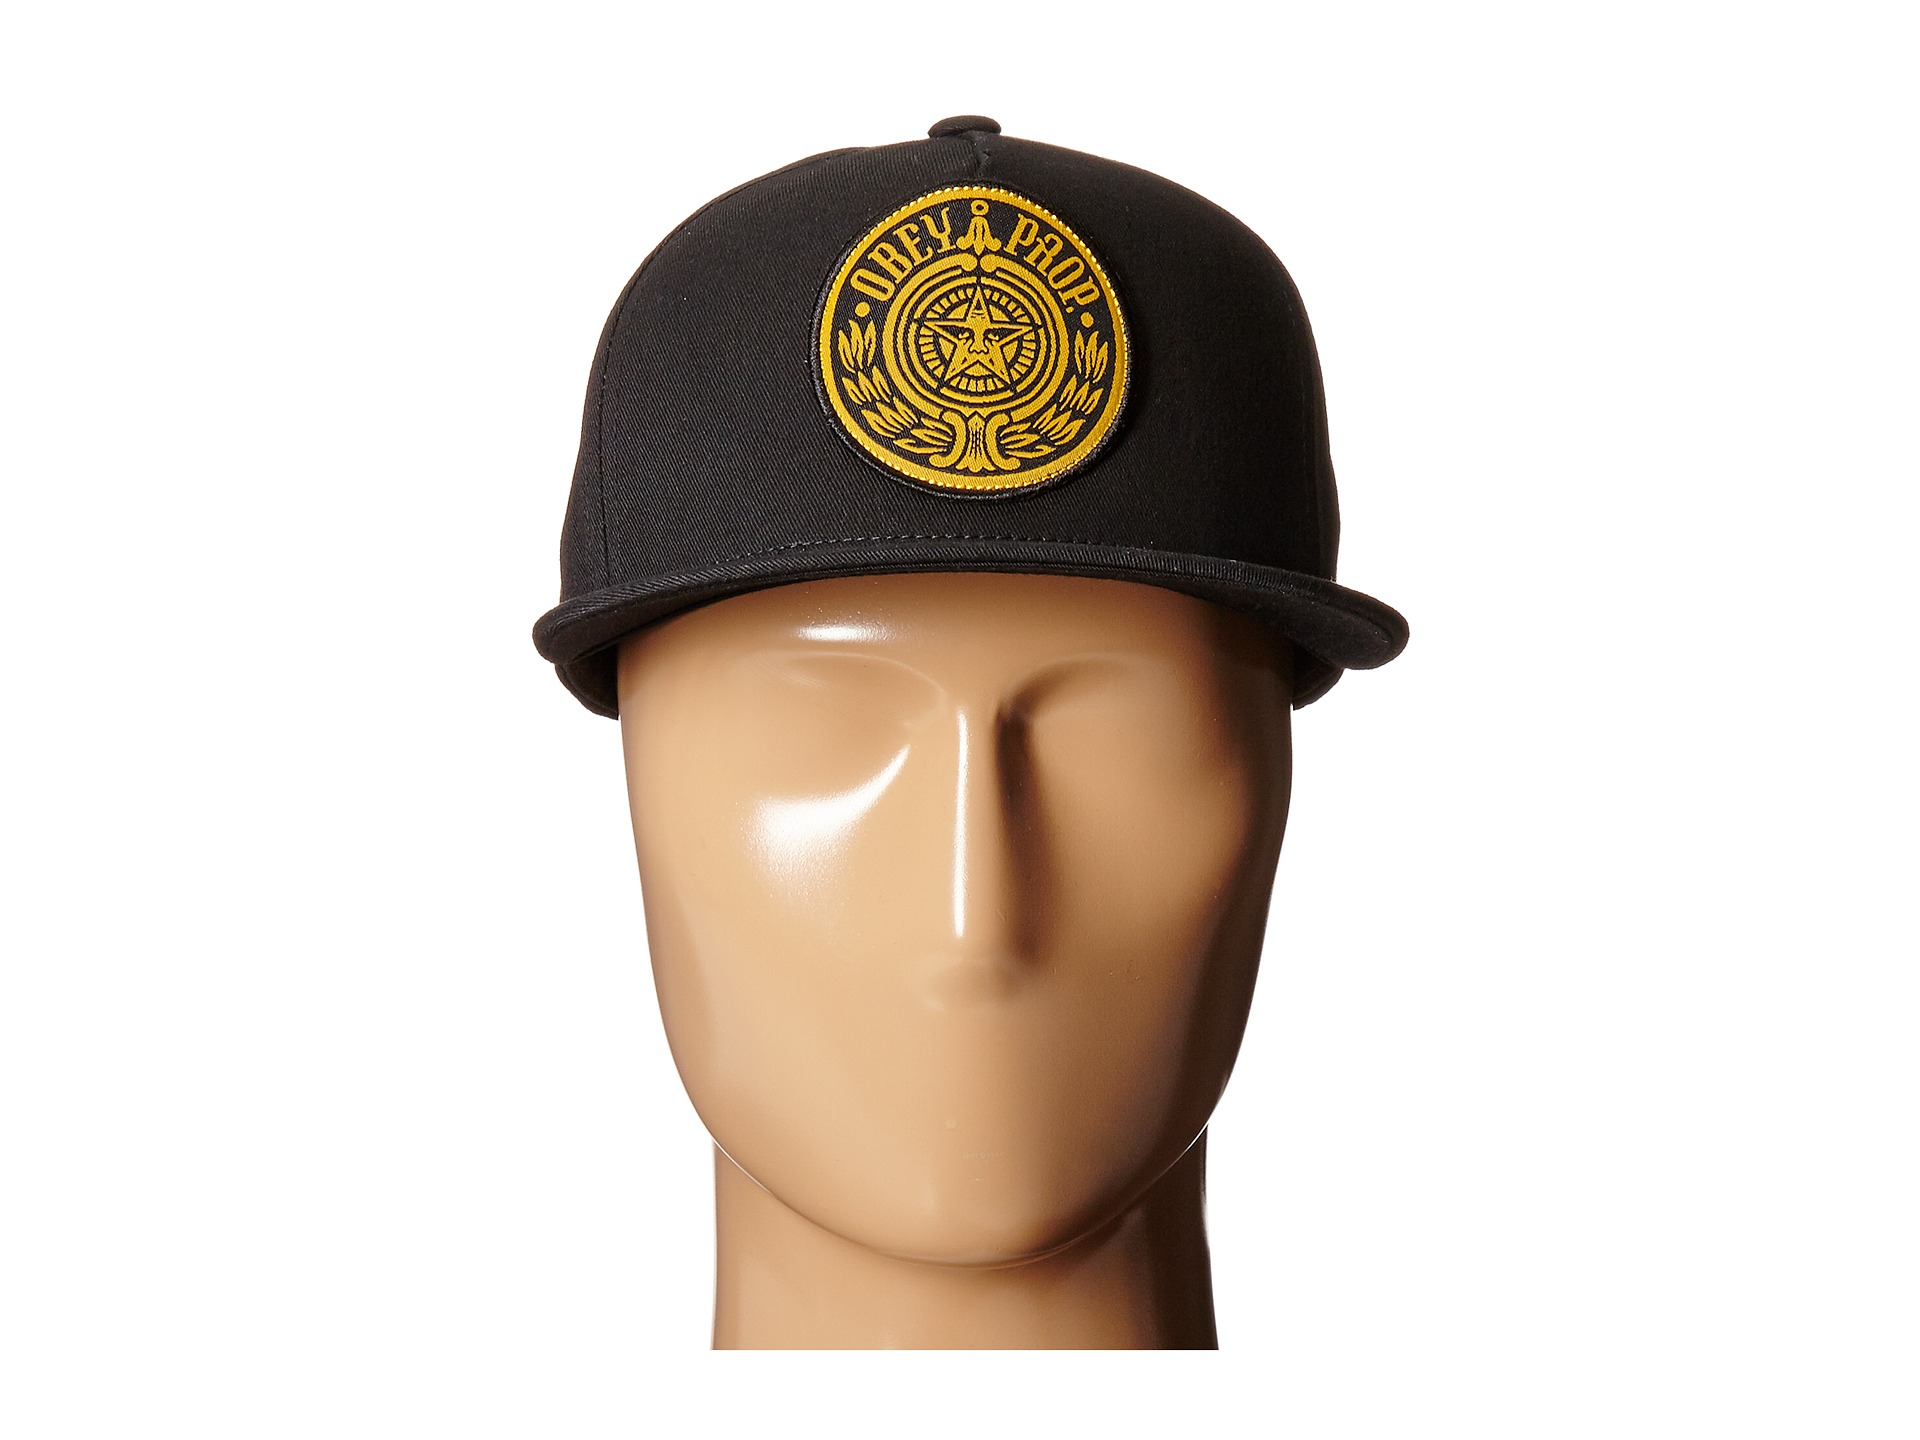 obey maximus snapback hat at zappos